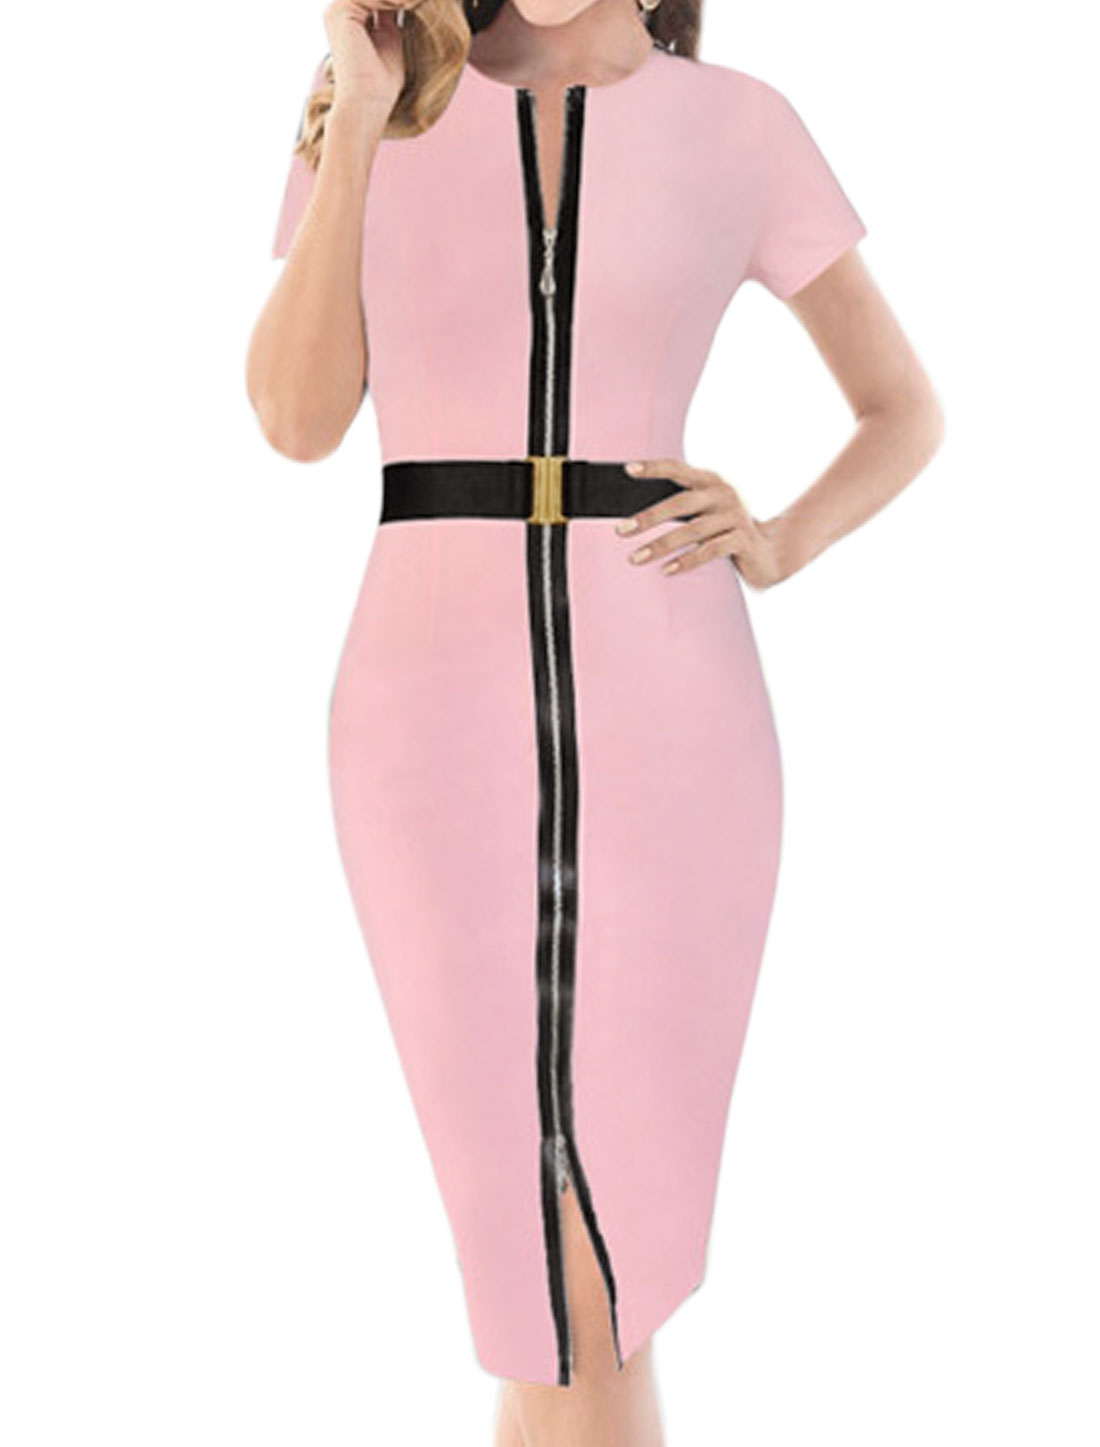 Woman Short Sleeves Zipper Front Pencil Dress w Belt Pink L